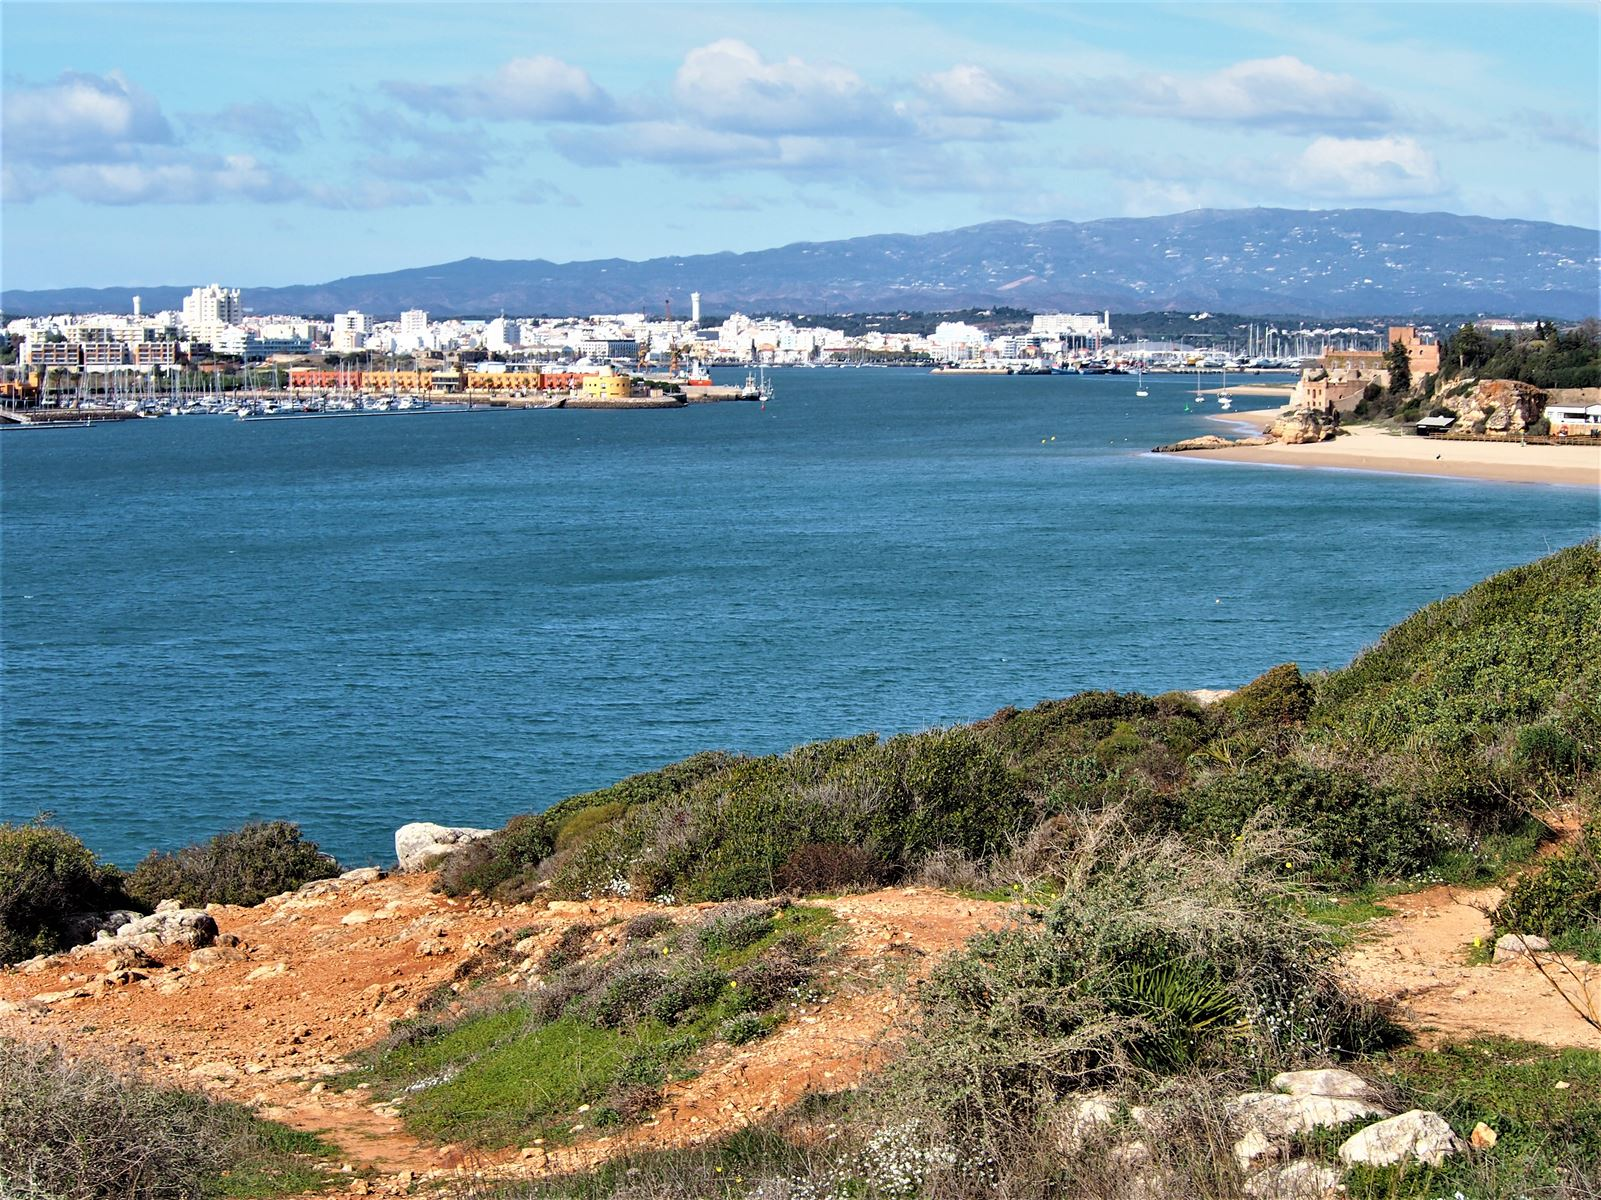 The mouth of the Arade River, with Portimao and its marina on the left, and Ferragudo on the right.